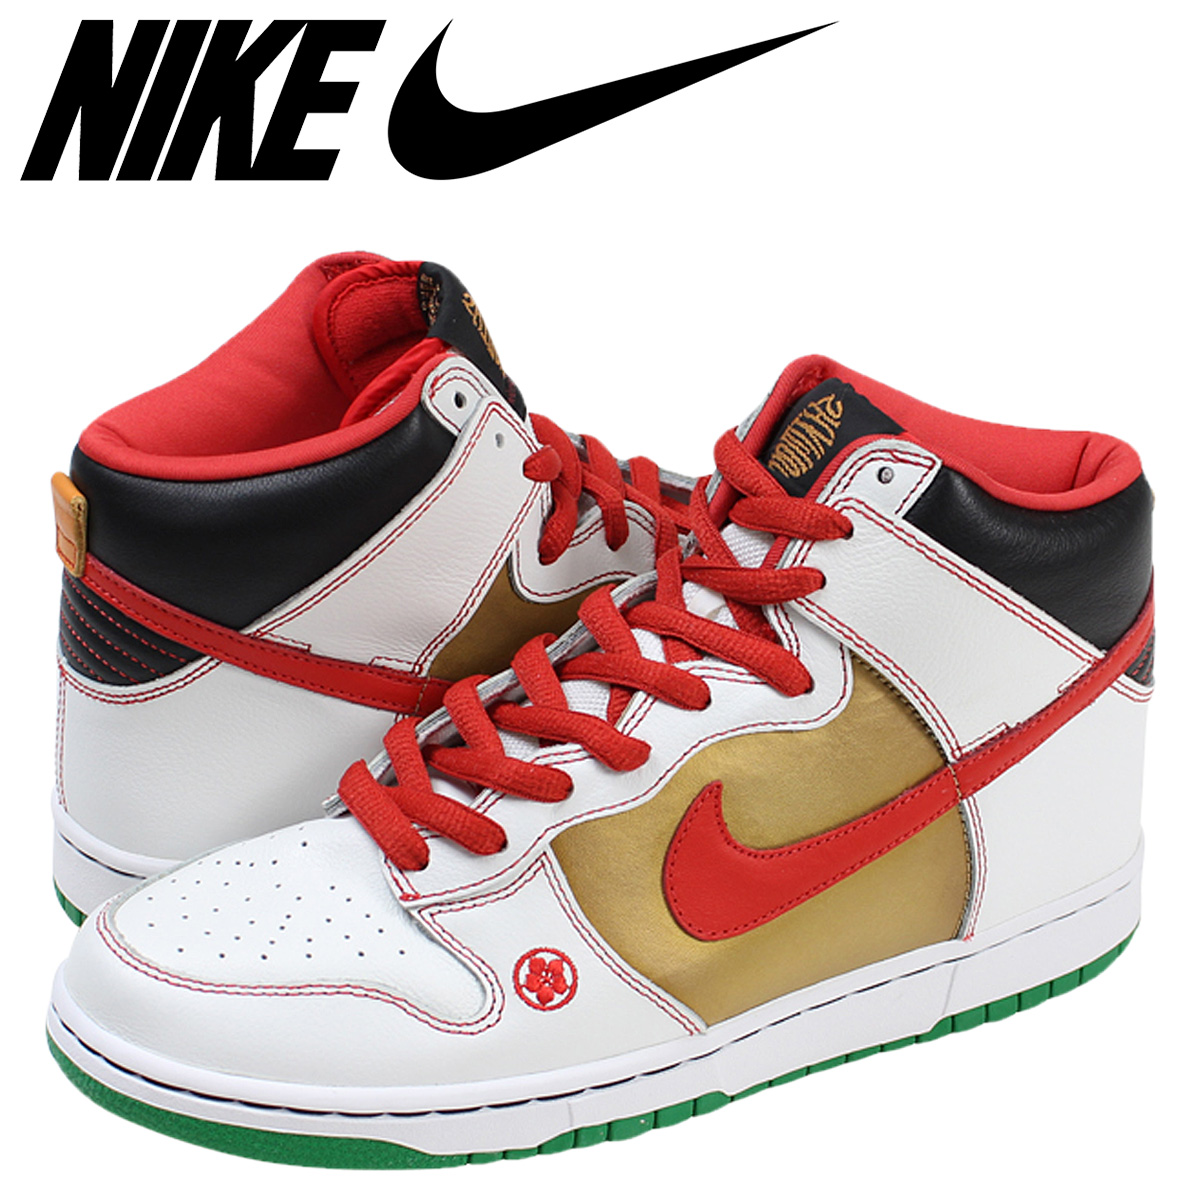 best service 0d99f b2045 [SOLD OUT] NIKE Nike sneakers DUNK HIGH PRO SB MONEY CAT dunk high  professional 305,050-162 white men